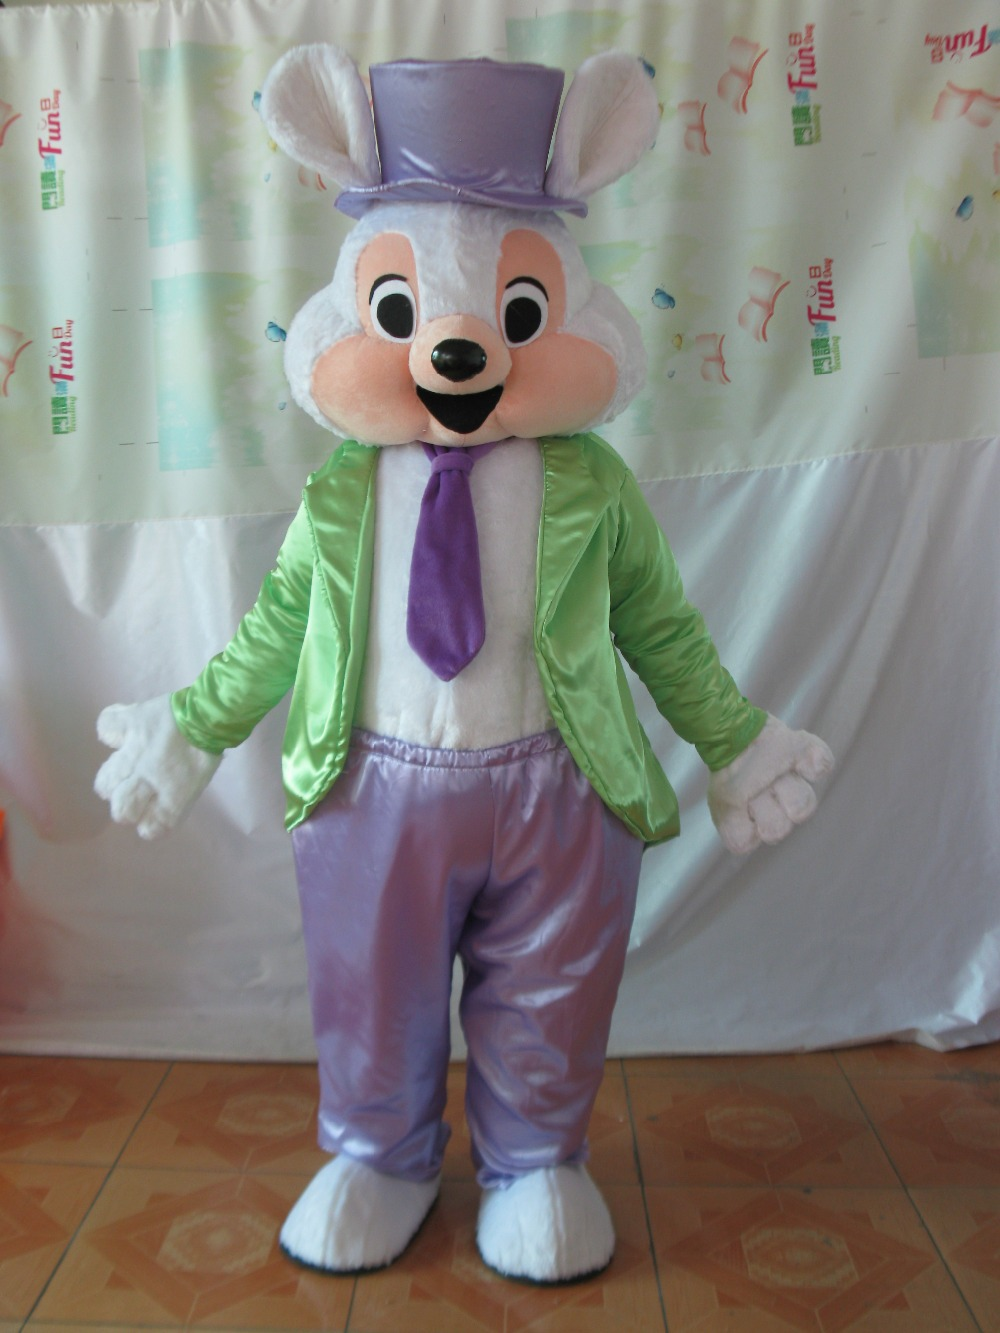 Quality Mascot Pink Easter Bunny Mascot Costume with Adult Size Fun Easter Holiday Rabbit Mascot Suit Fancy Dress(China (Mainland))